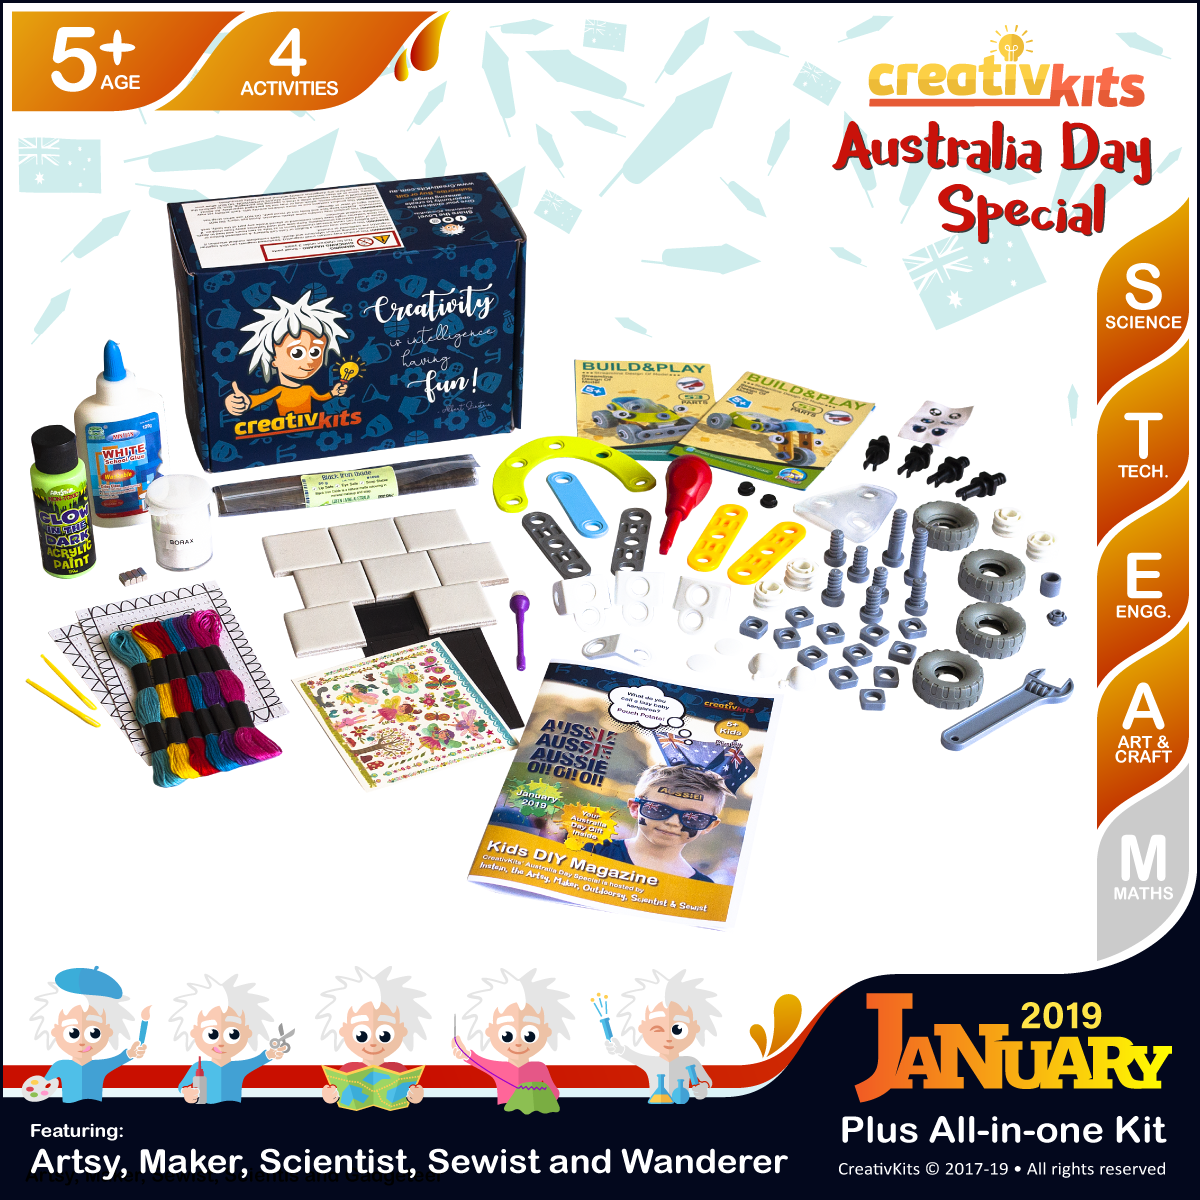 January Plus Kit • Age 5 plus • Fridge Magnets, Carpet Stitching, GID Magnetic Slime & Buggy & Trike